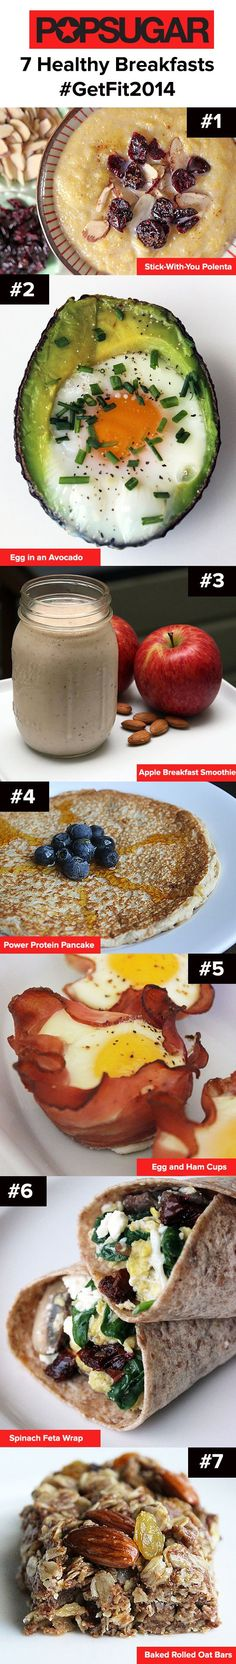 7 Day of Breakfast! Try a new breakfast every morning with these tasty, healthy, and nutritious options. Its all at http://chickencasserole.org/posts/7-Day-of-Breakfast-Try-a-new-breakfast-53928